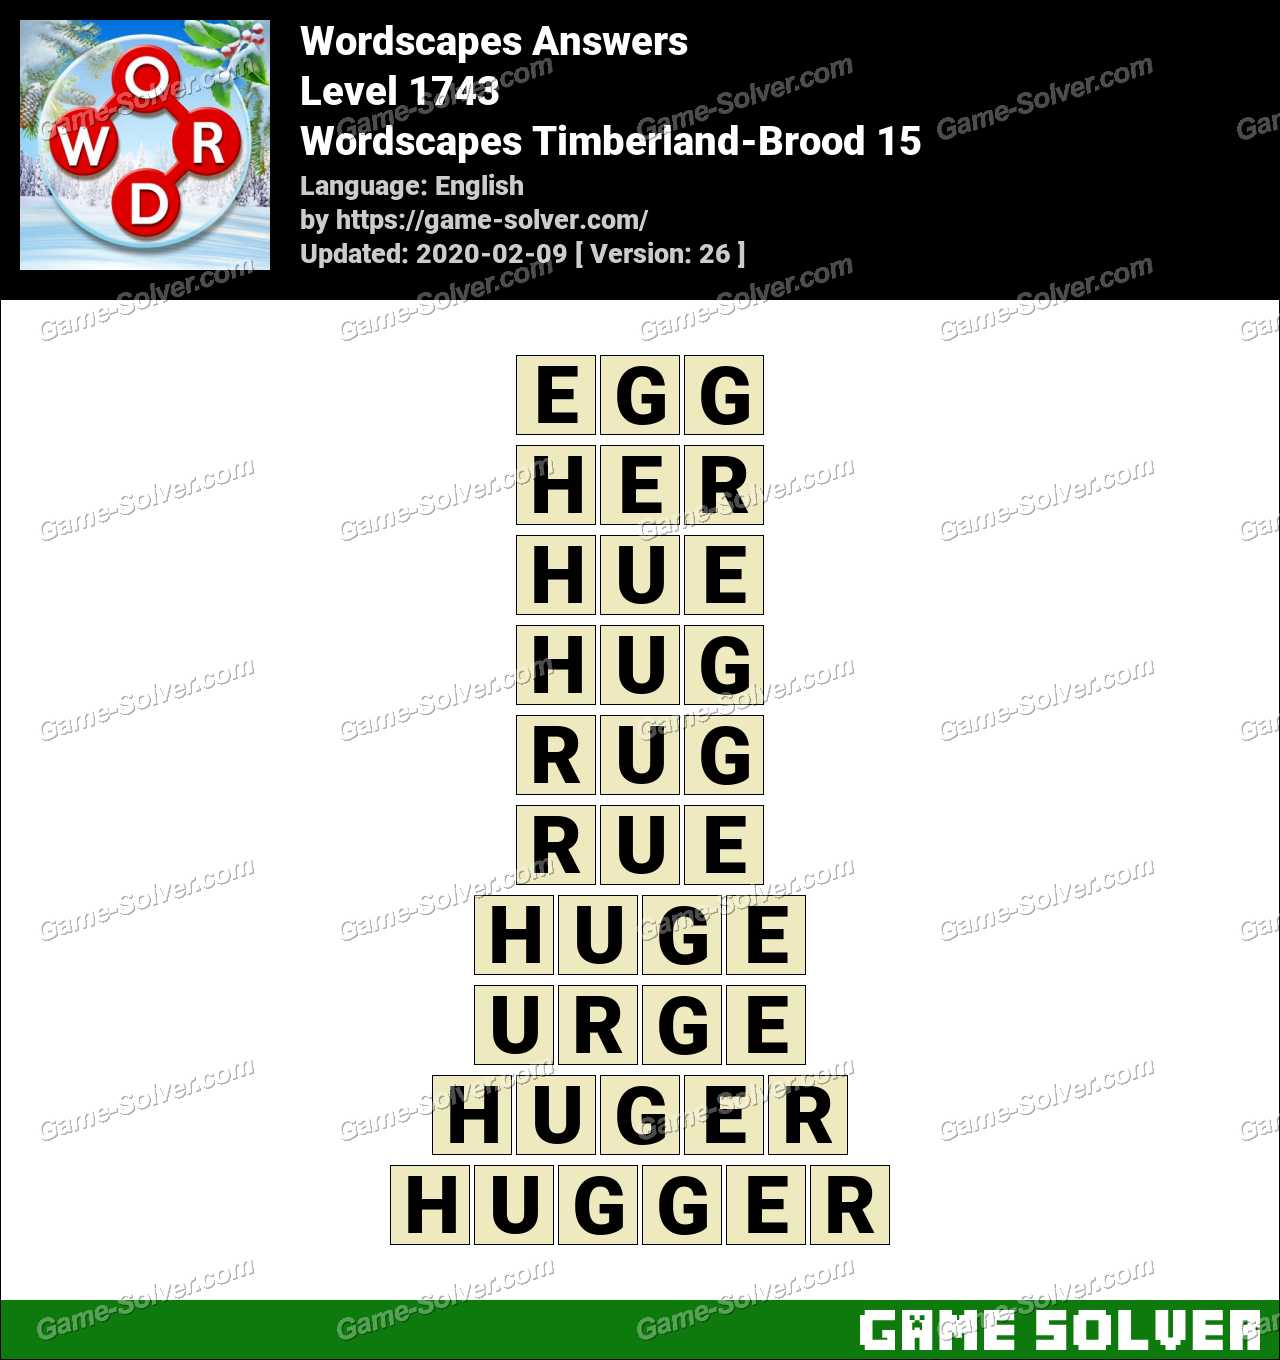 Wordscapes Timberland-Brood 15 Answers